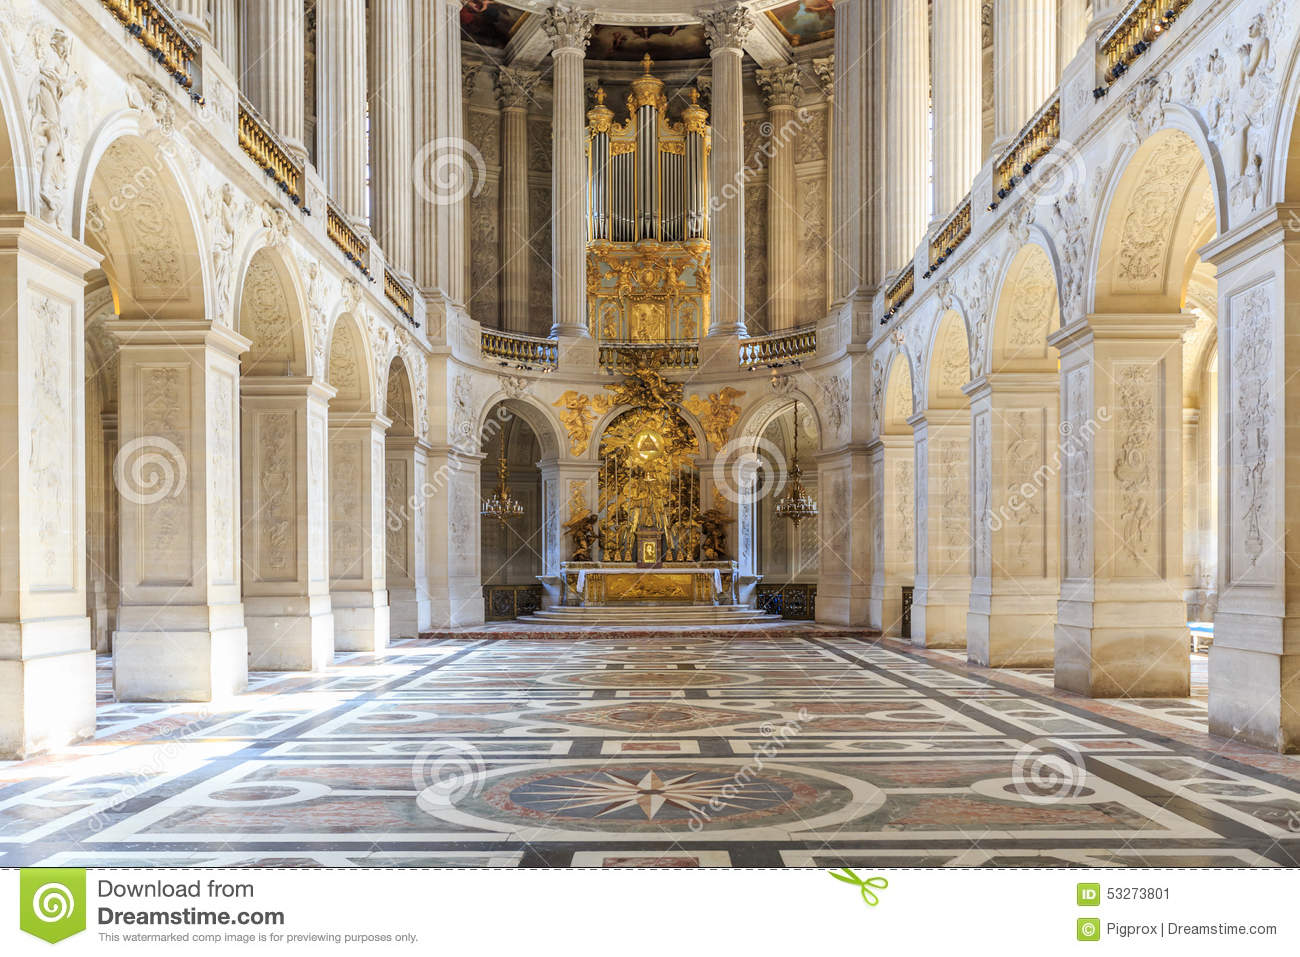 Ch teau int rieur de versailles versailles france photo for Interieur france